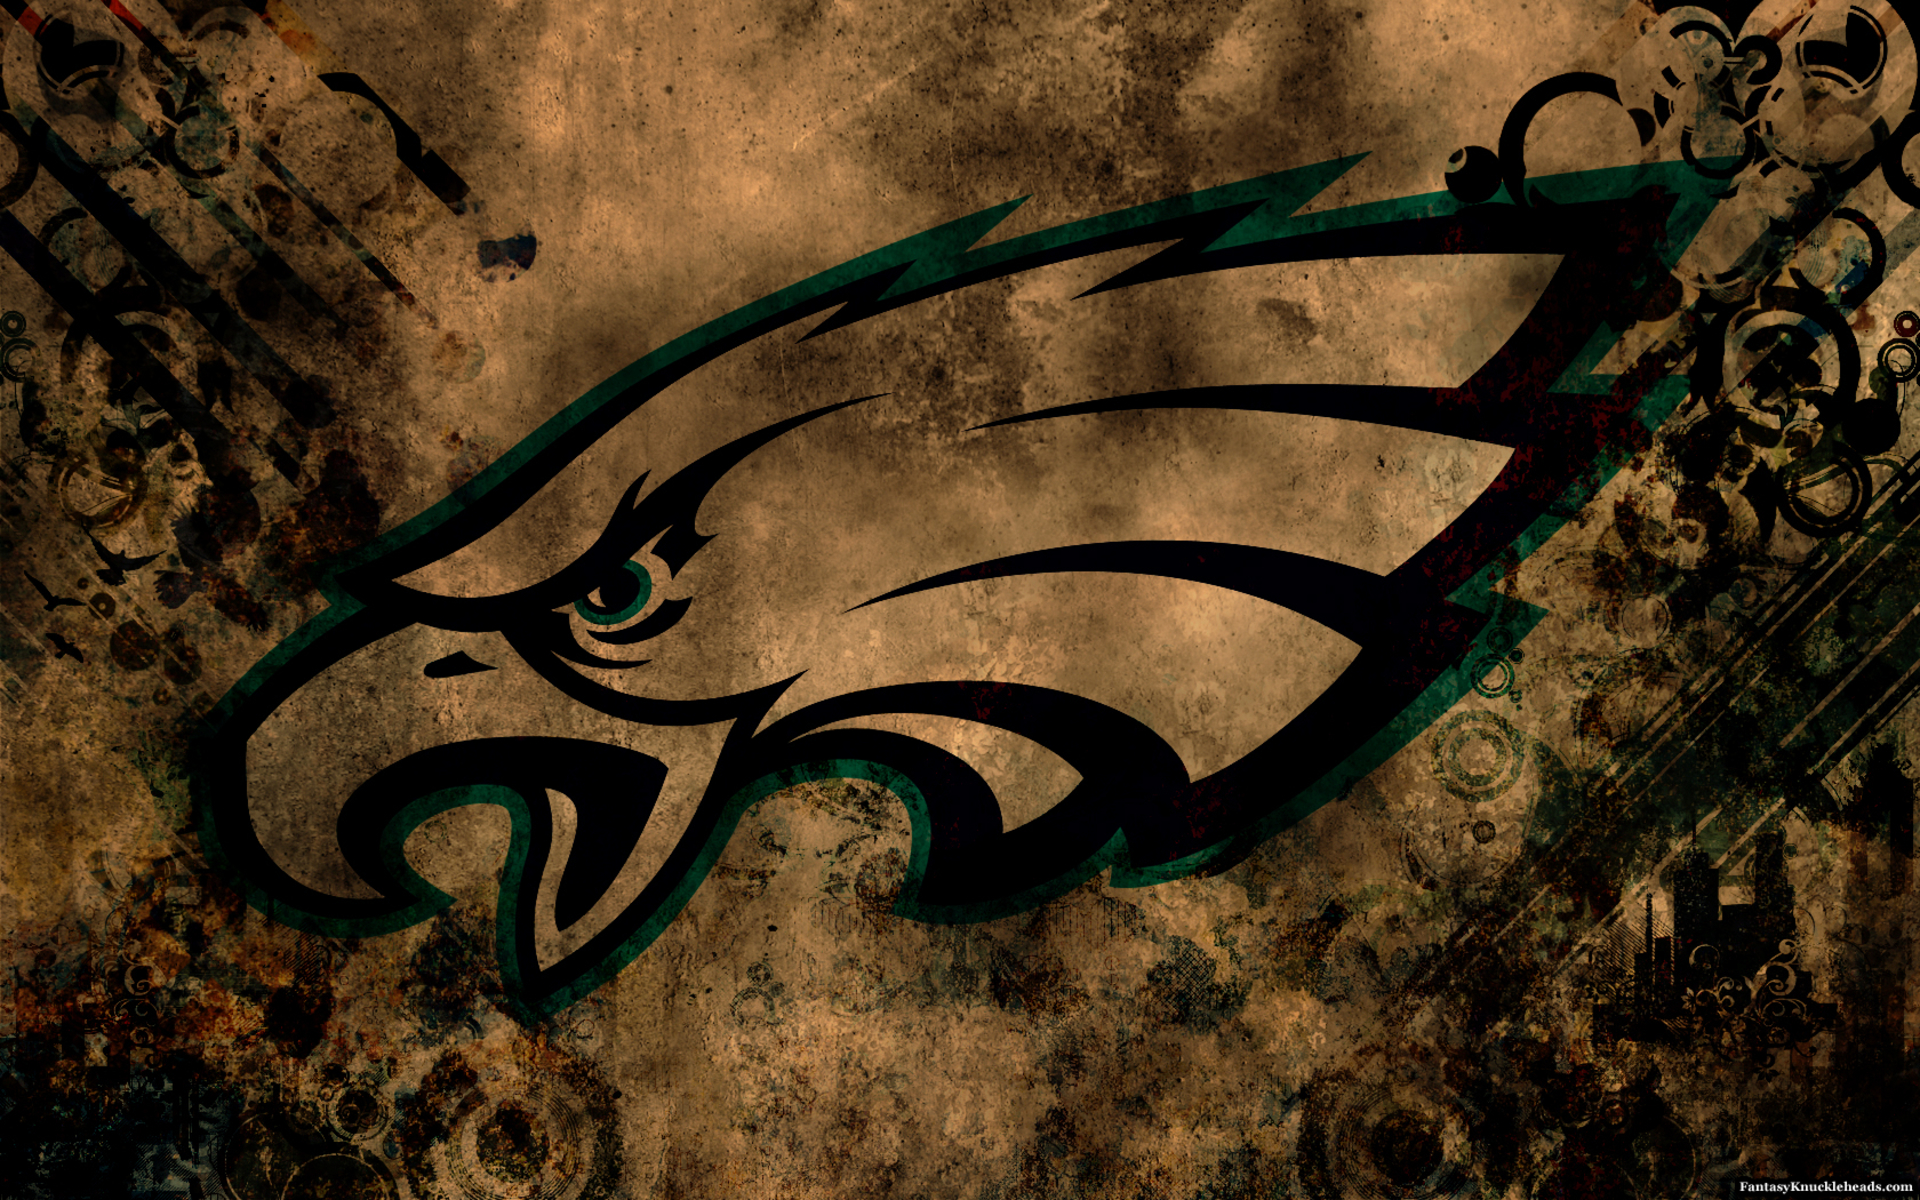 PHILADELPHIA EAGLES Nfl Football Gd Wallpaper 1920X1200 158024 1920x1200